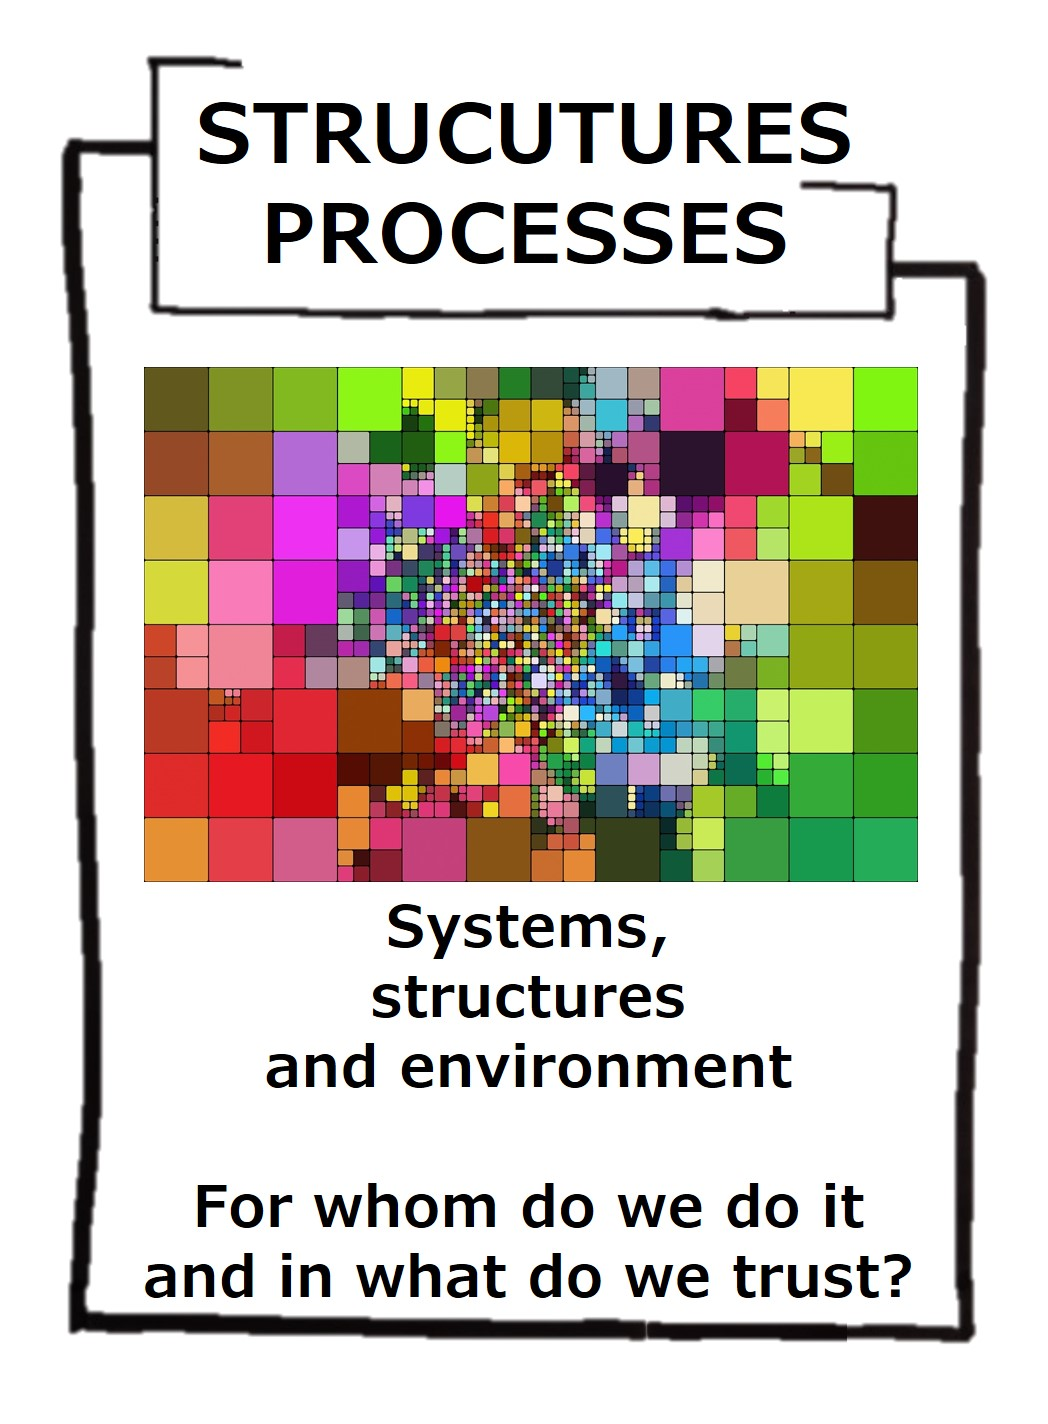 Structures and processes guide us to a specific result